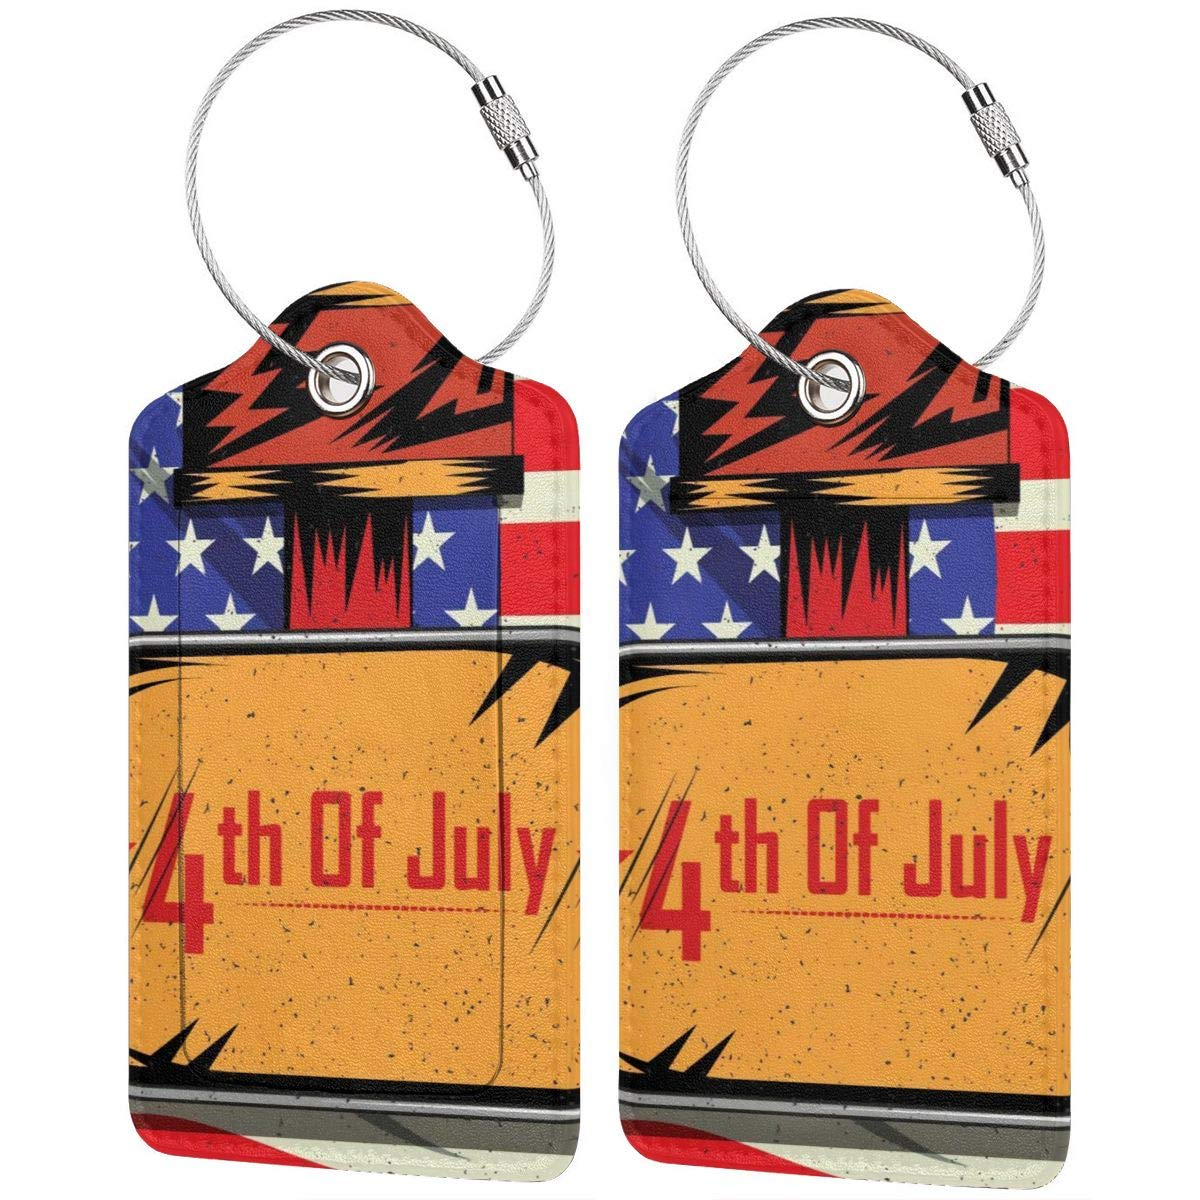 Luggage Tags Leather Case Suitcase Label With Stainless Steel Loop Bag Baggage Tote Tags Travel Tags Independence Day 4th Of July United States set of 4